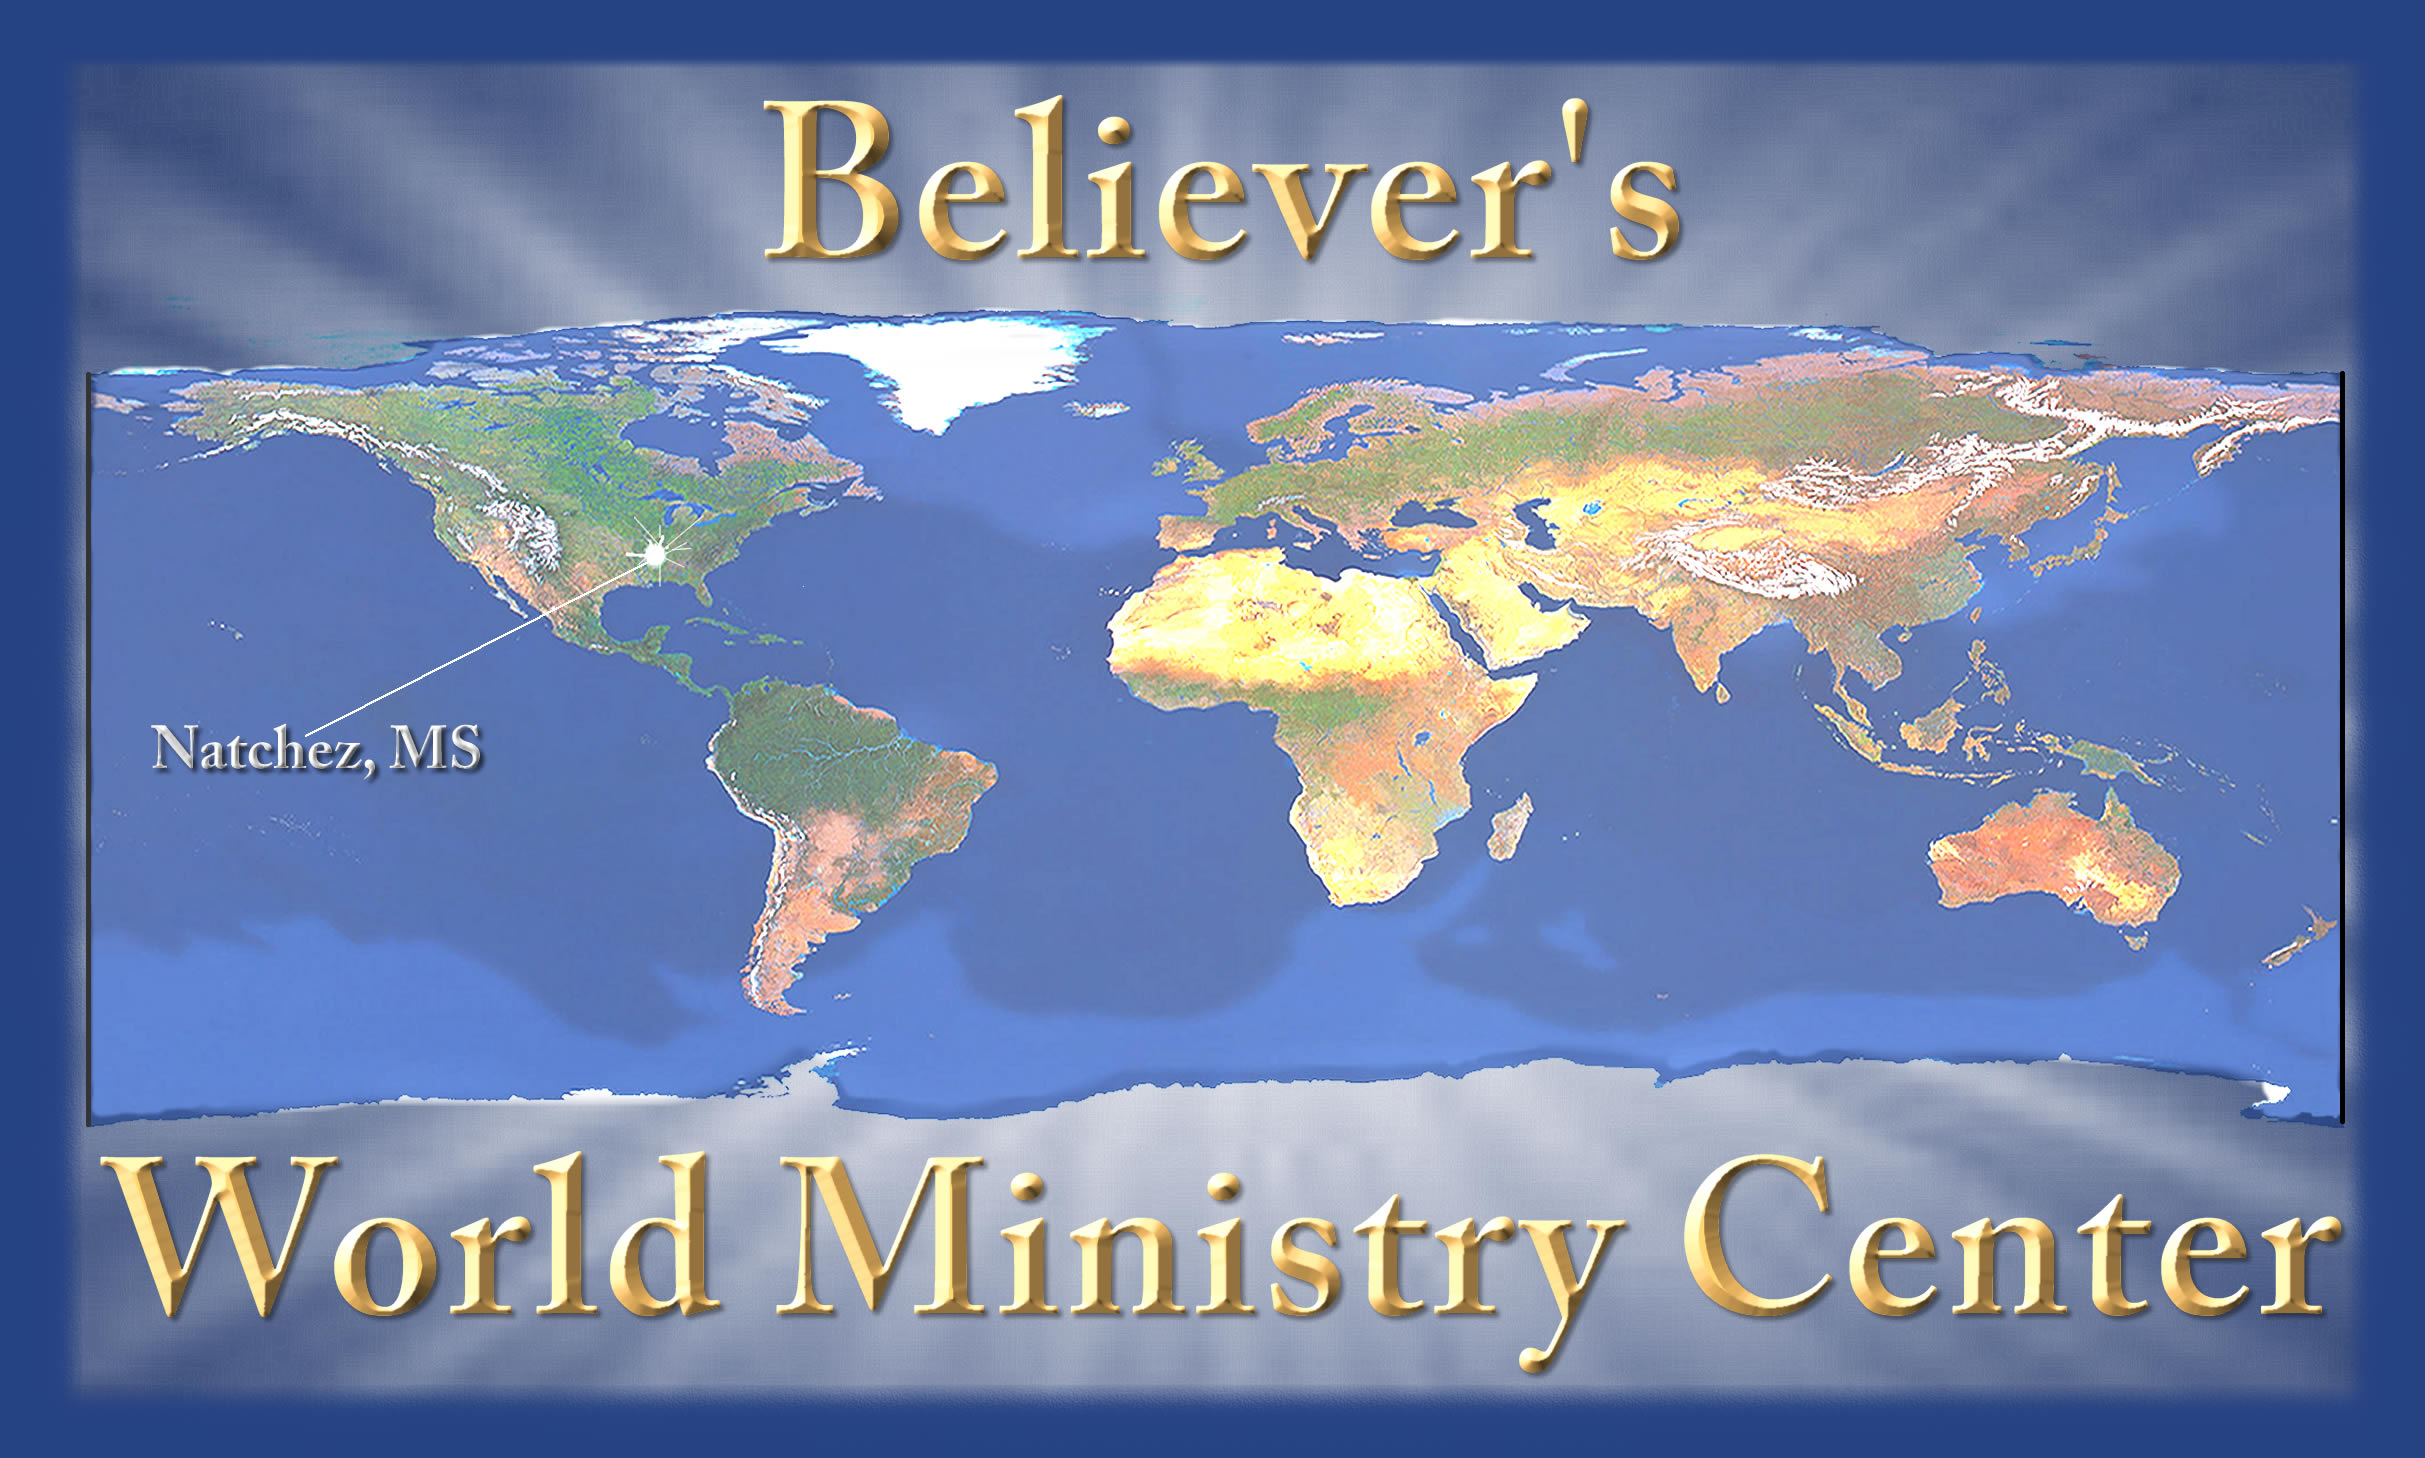 Believer's World Ministry Center